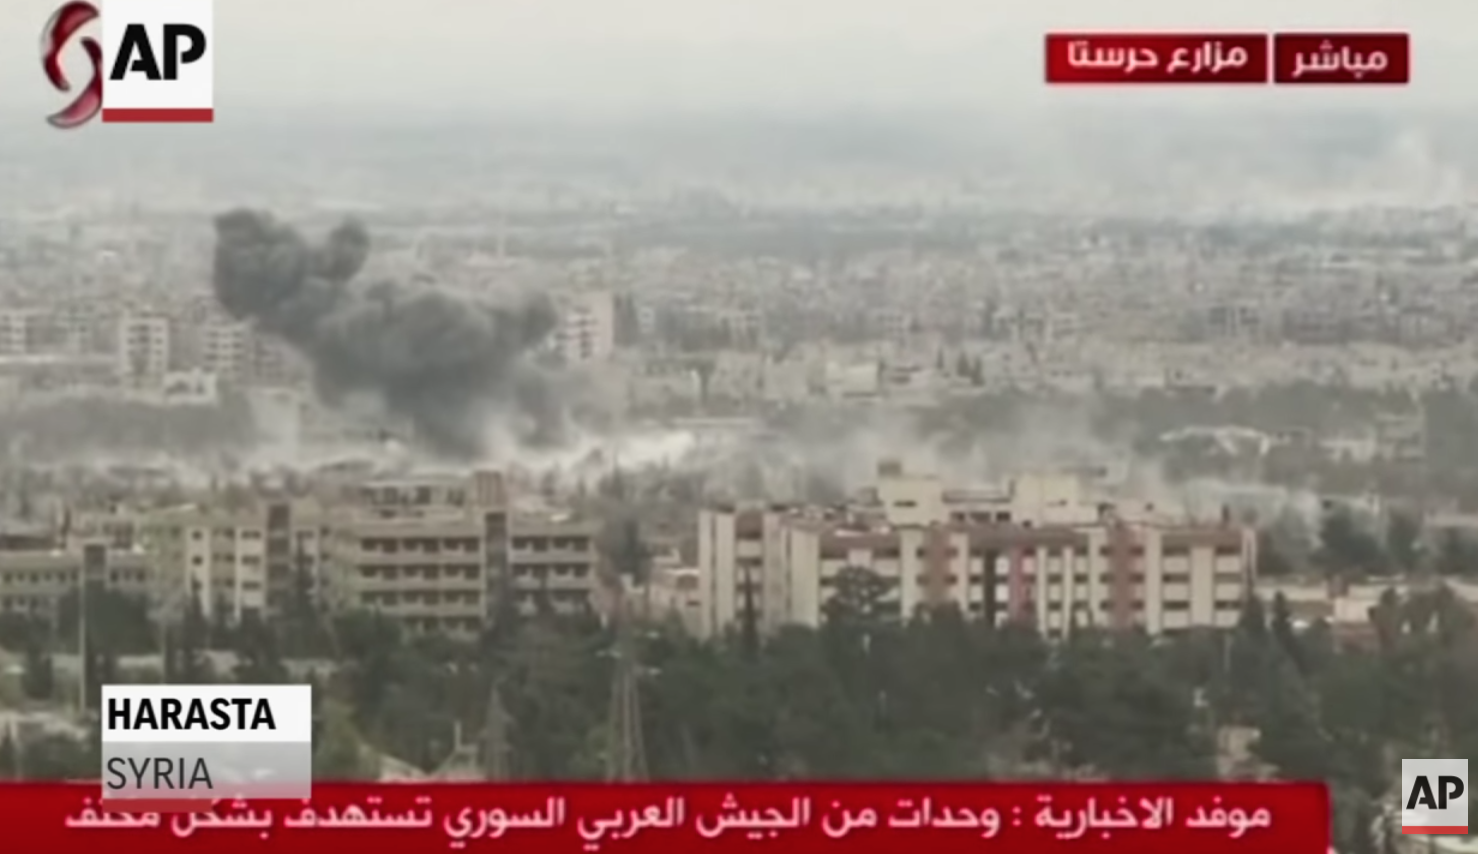 Bombing of Women And Children In Syria Continues